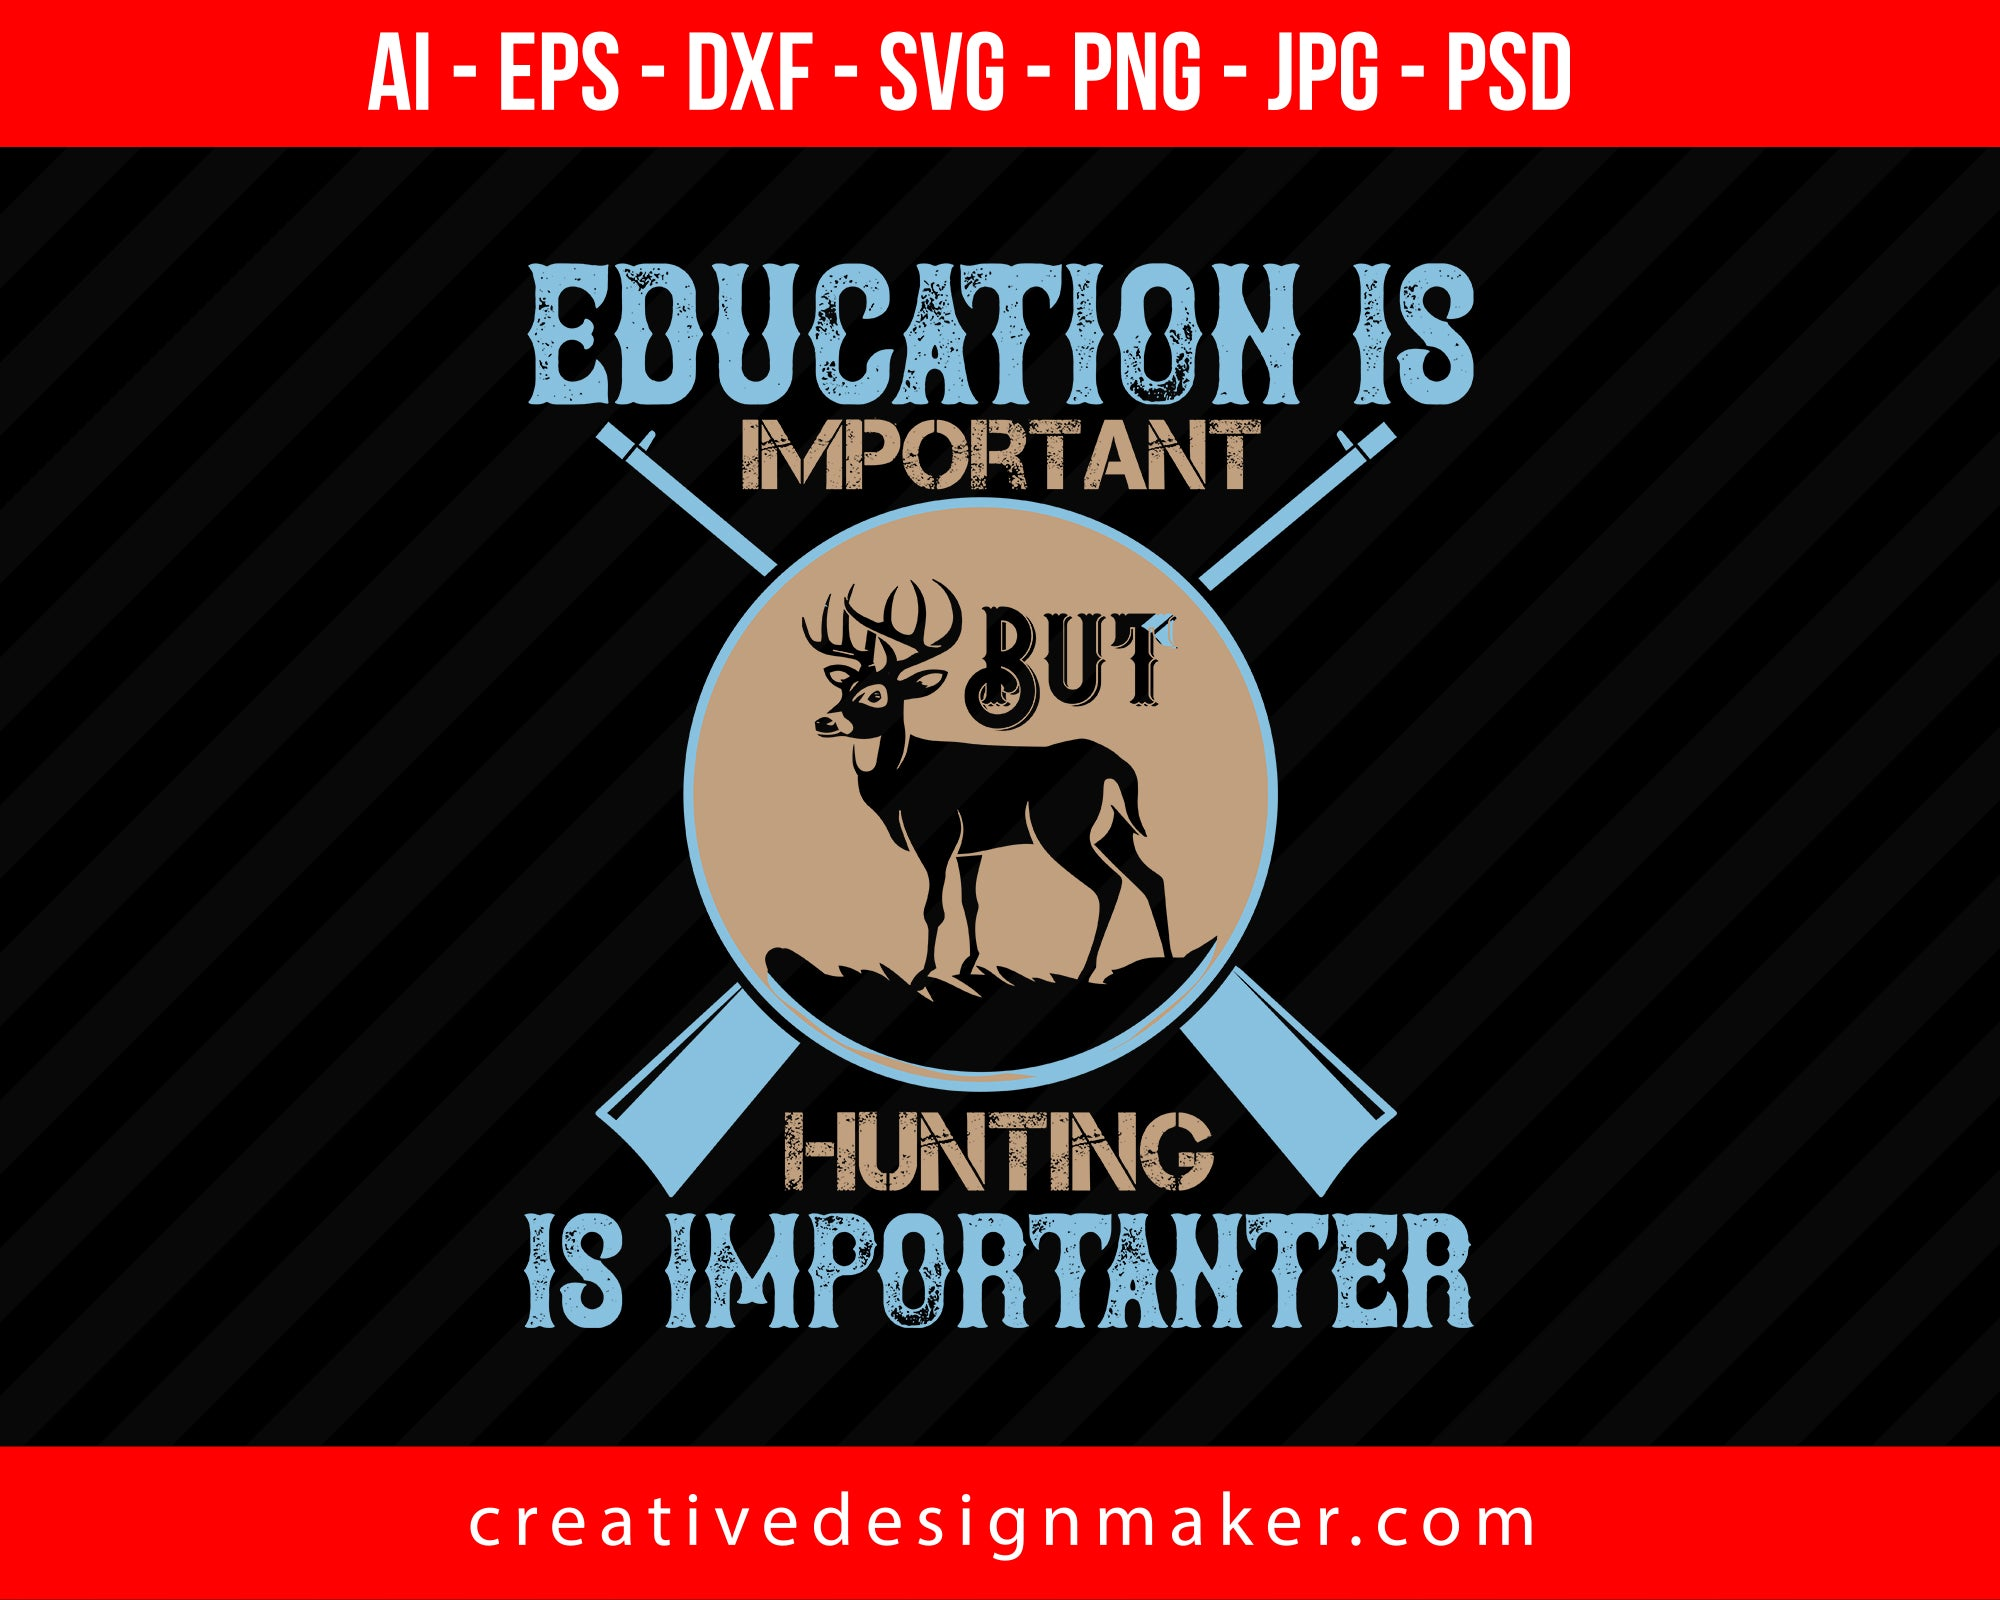 Educations Important But Hunting Is Importuner Print Ready Editable T-Shirt SVG Design!